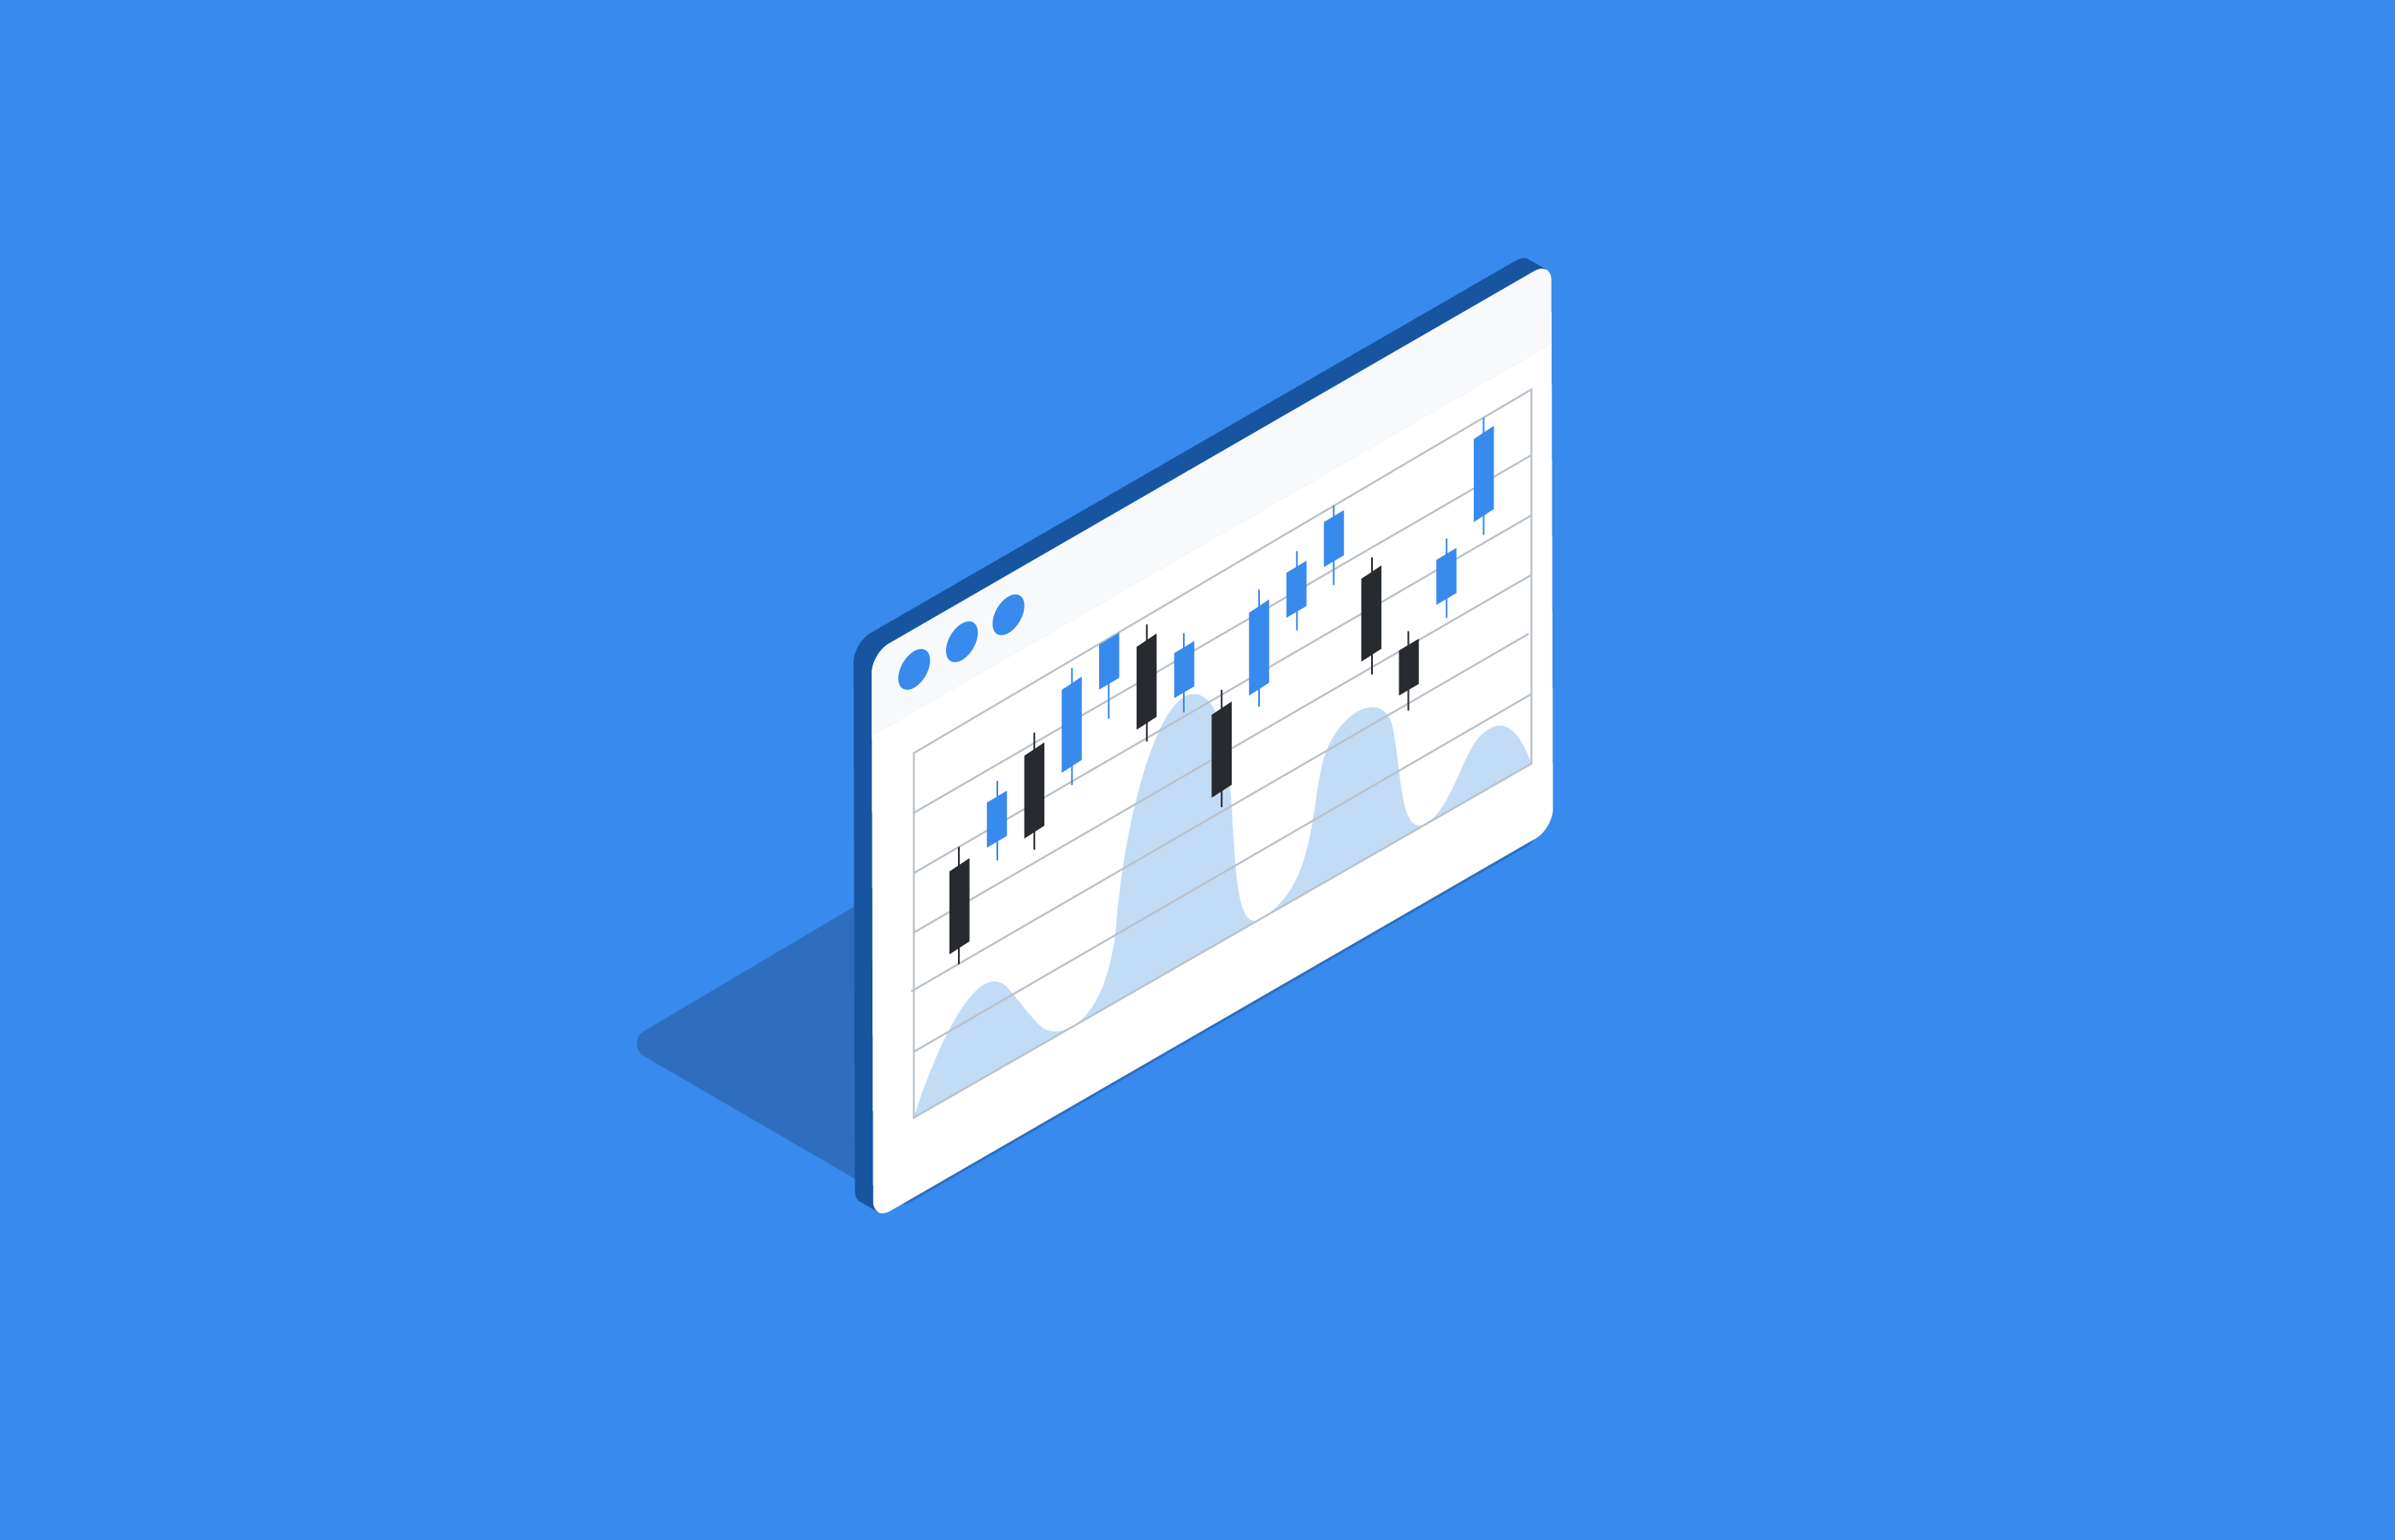 illustrated financial chart